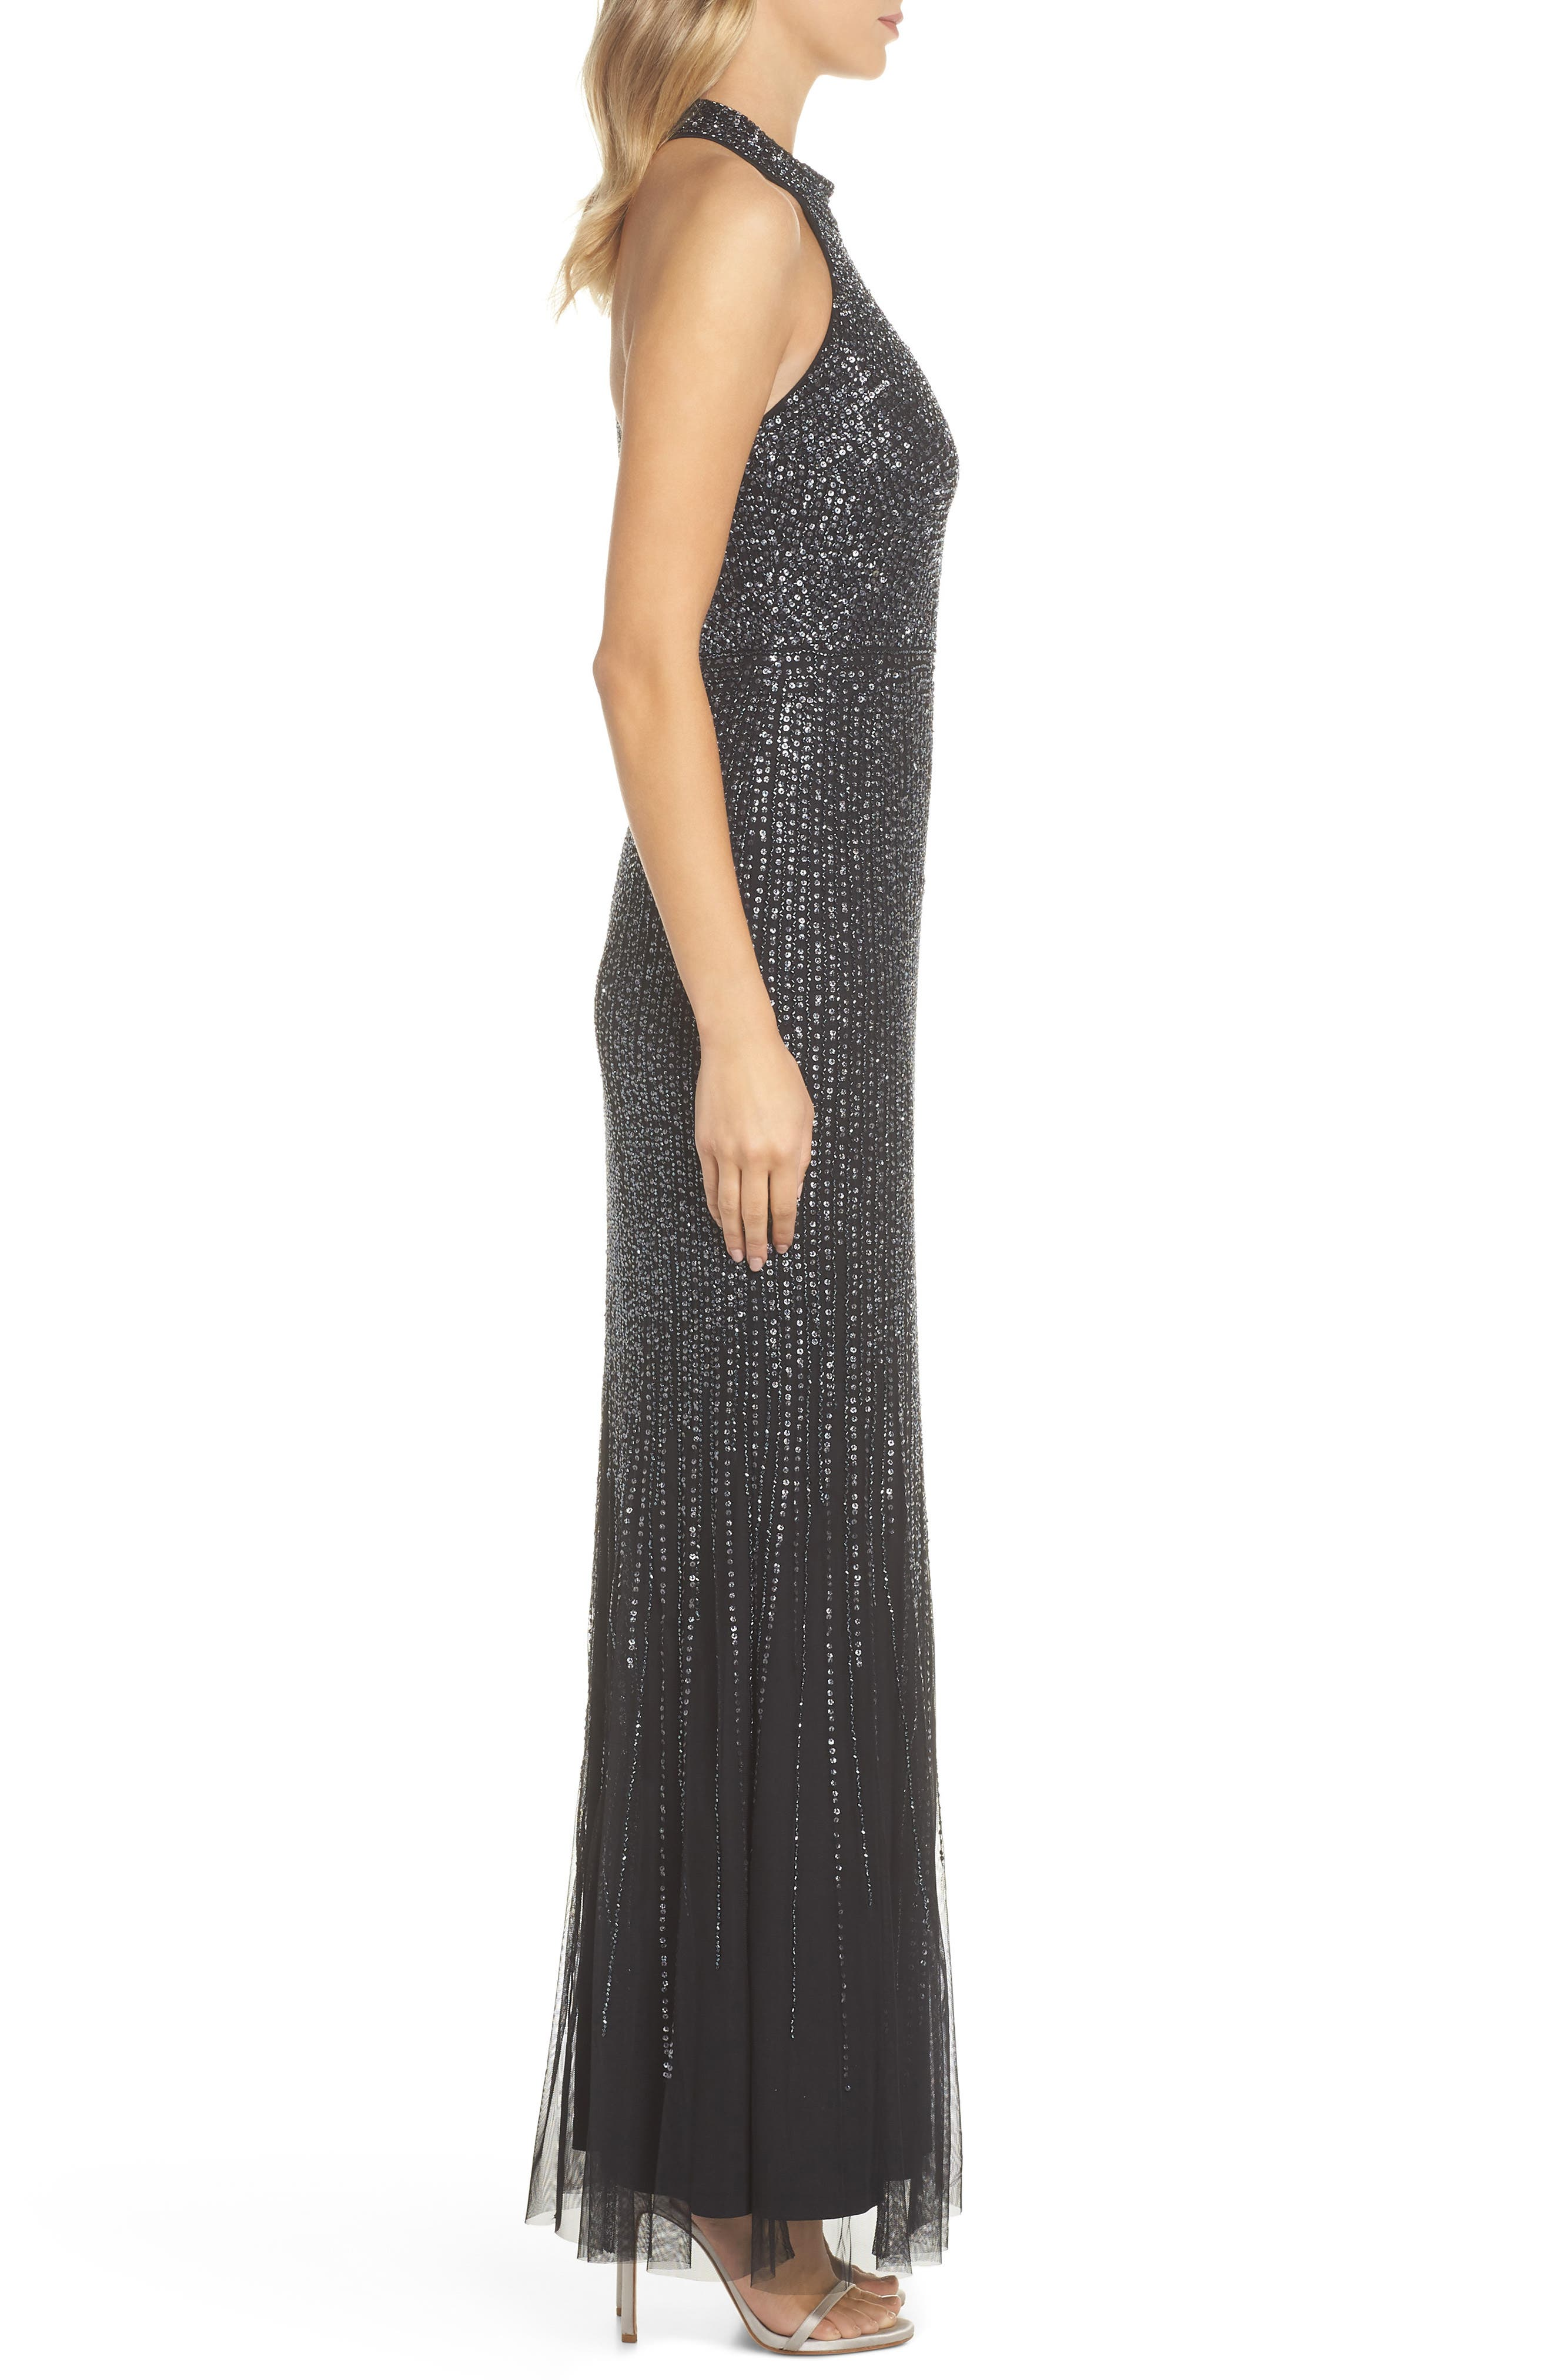 ADRIANNA PAPELL,                             Beaded Halter Gown,                             Alternate thumbnail 3, color,                             001